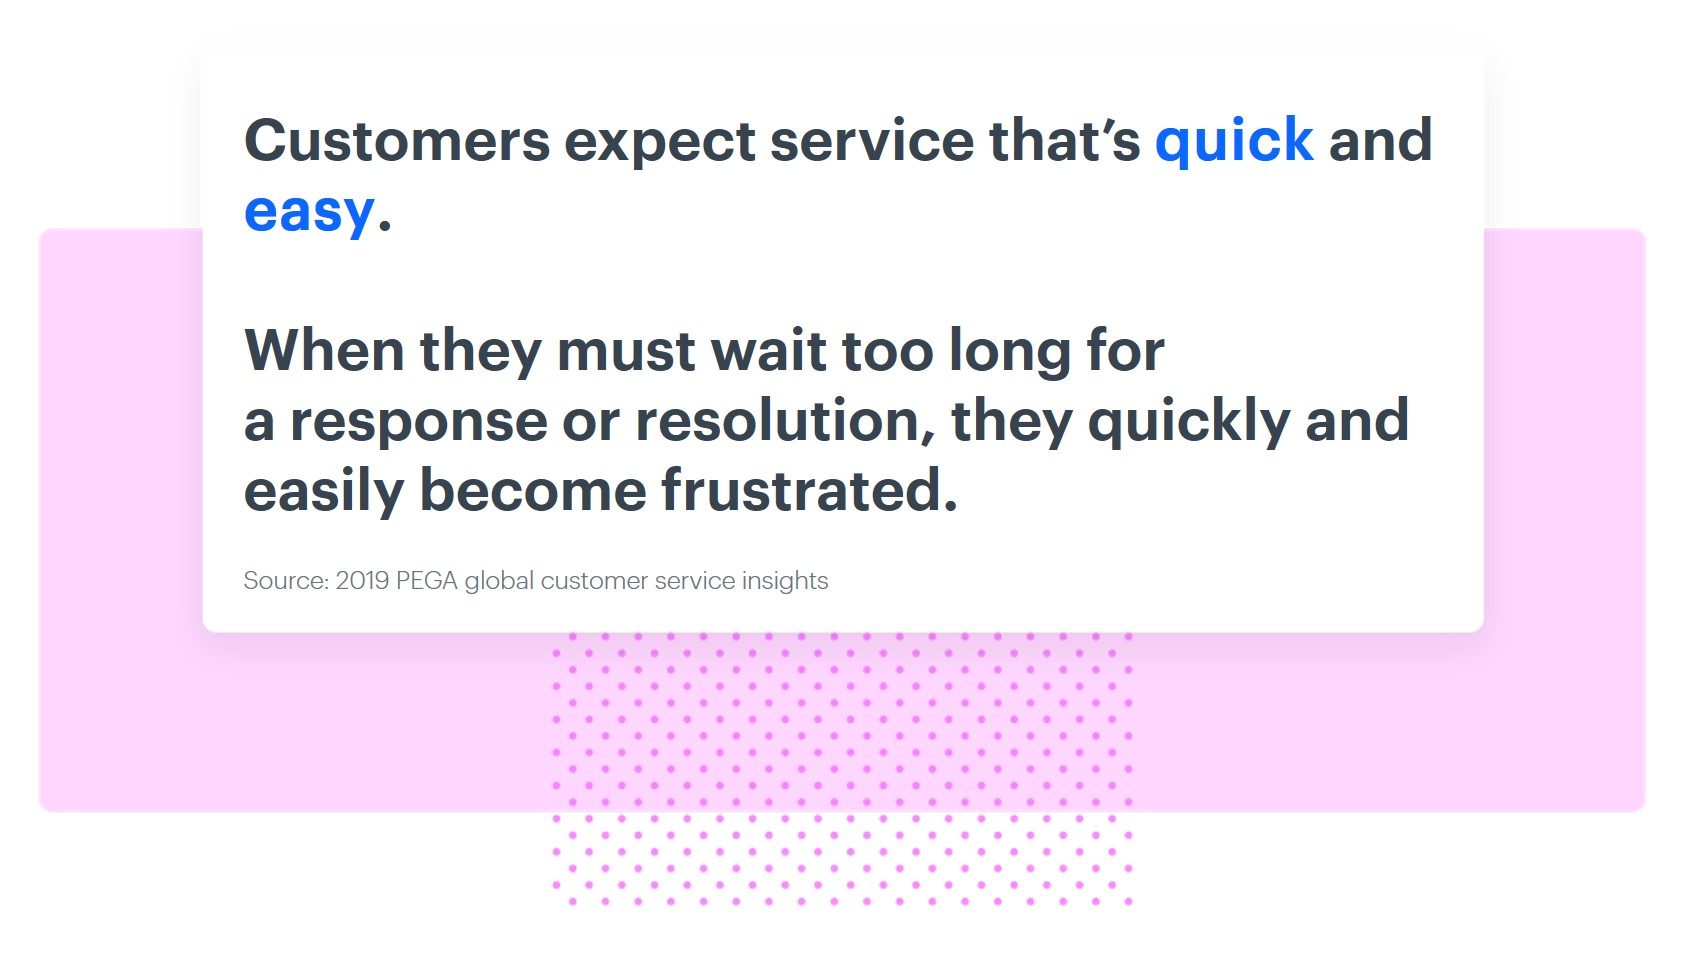 Customer expect the services to be quick and easy